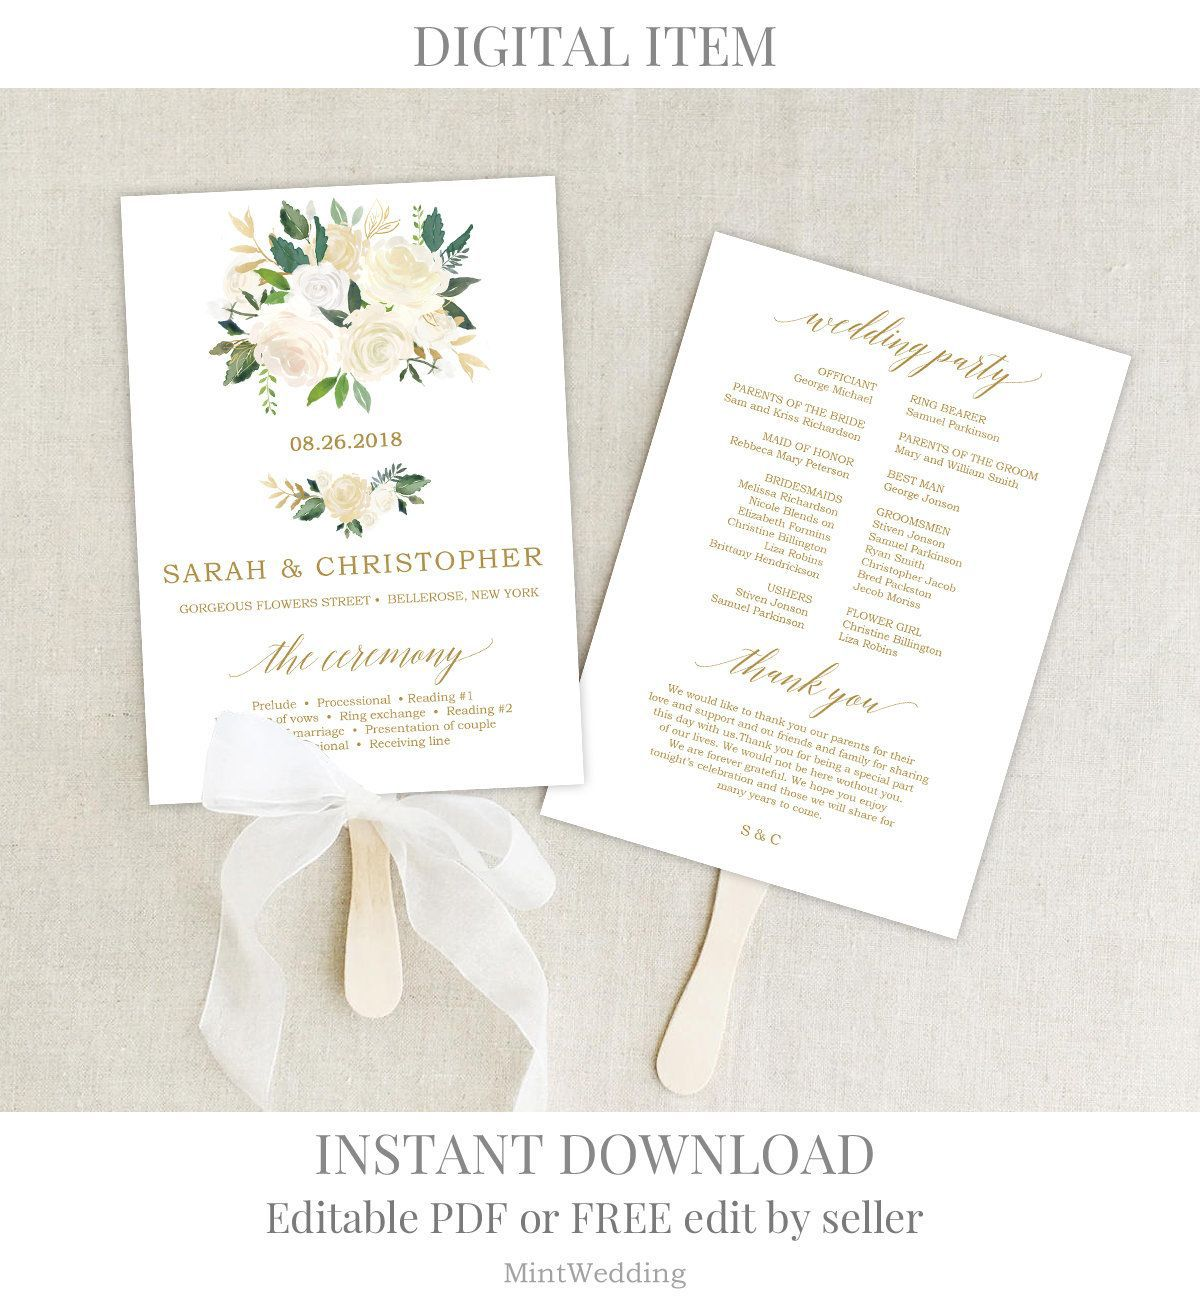 002 Fascinating Free Wedding Program Template For Word Highest Clarity  Download Fan Microsoft Downloadable ReceptionFull